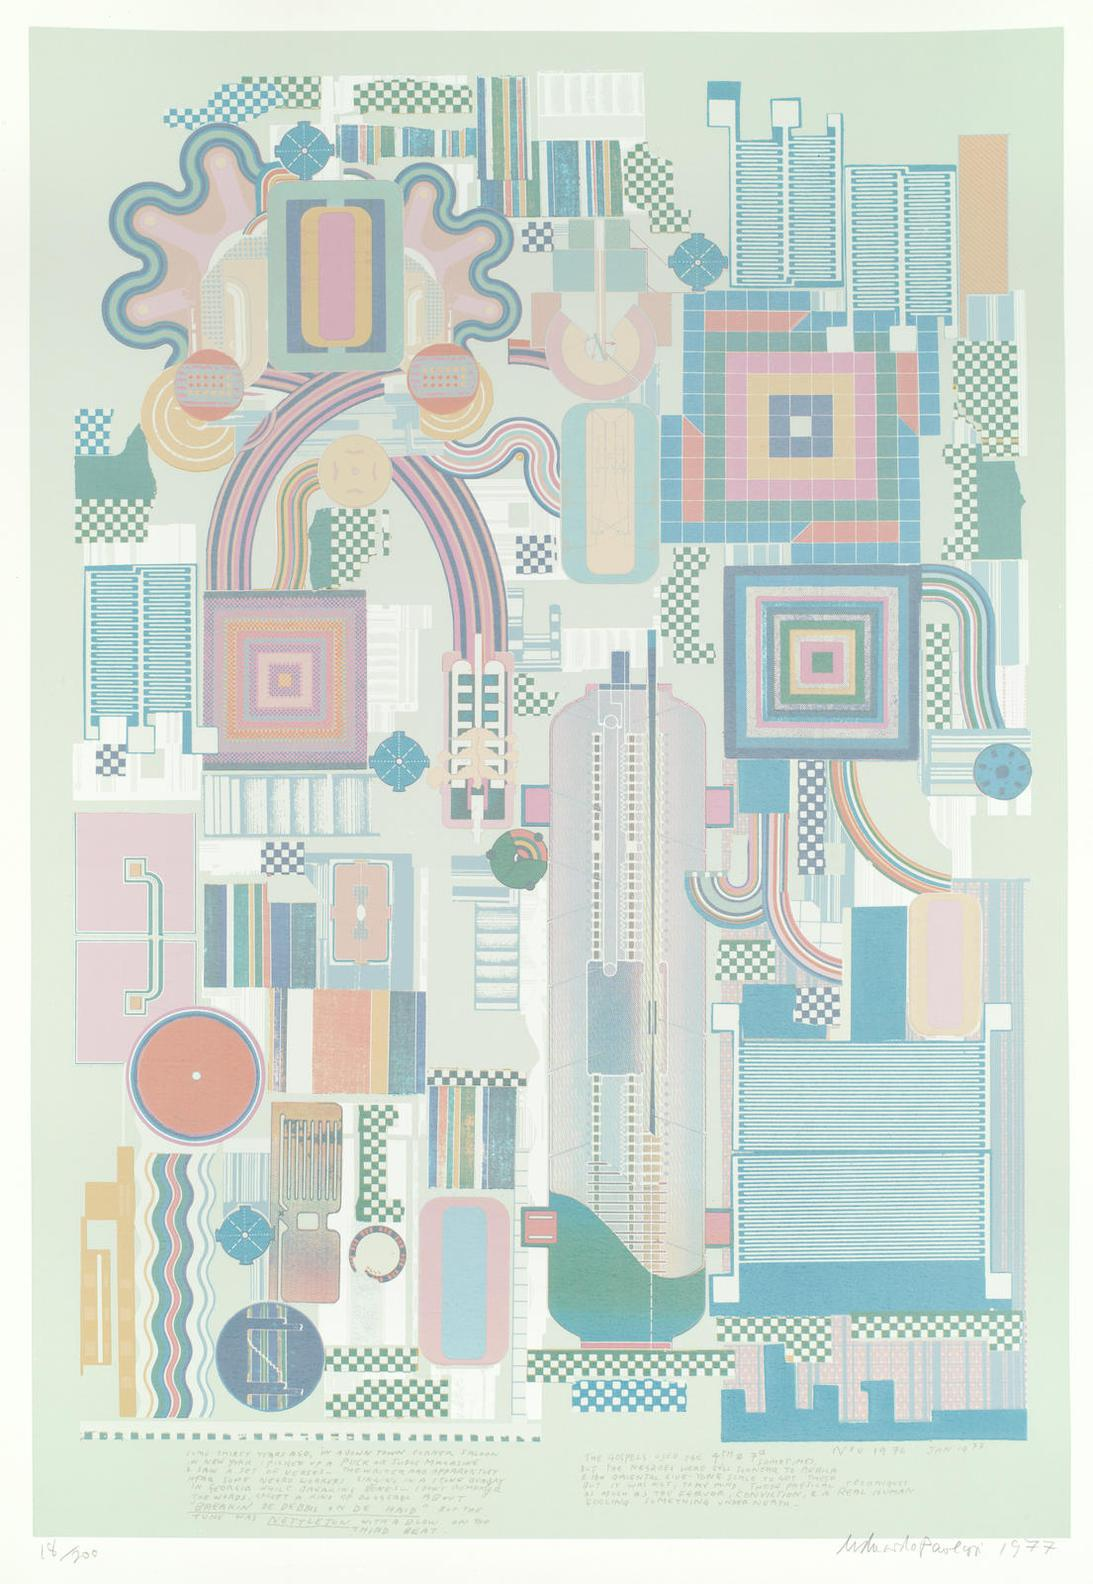 Sir Eduardo Paolozzi - Six Plates, From Calcium Light Night (Miles 177, 178, 179, 181, 182, 185): including 'Aeschylus and Socrates' 1975 (M.181), 'Largo to Presto' 1974 (M.178), 'The Children's Hour' 1974 (M.177), 'From Early Italian Poets' 1975 (M.182), 'Central Park in the Dark Some 40 Years Ago' 1974 (M.179), 'Nettleton' 1976 (M.185)-1977